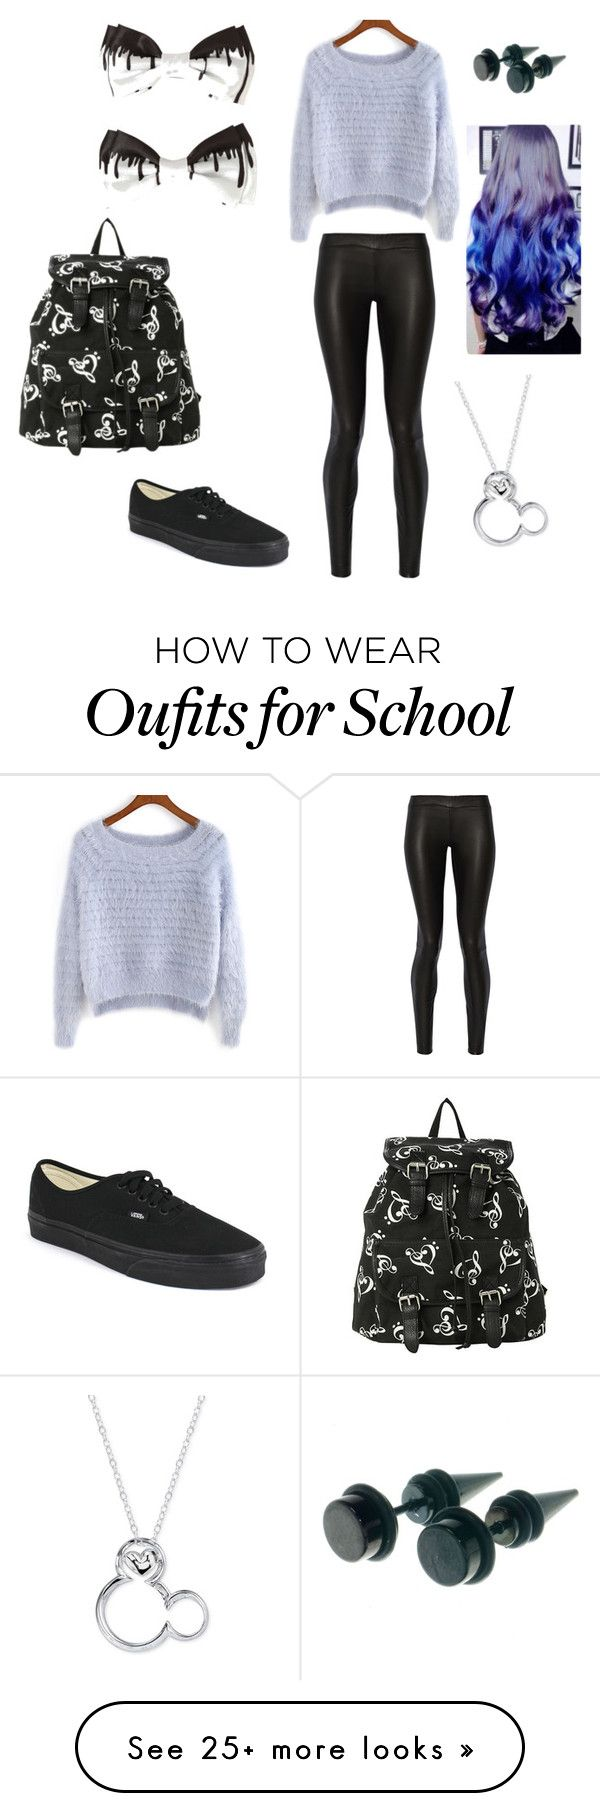 """Middle school"" by emmylulu20 on Polyvore featuring The Row, Vans, Disney, women's clothing, women's fashion, women, female, woman, misses and juniors"